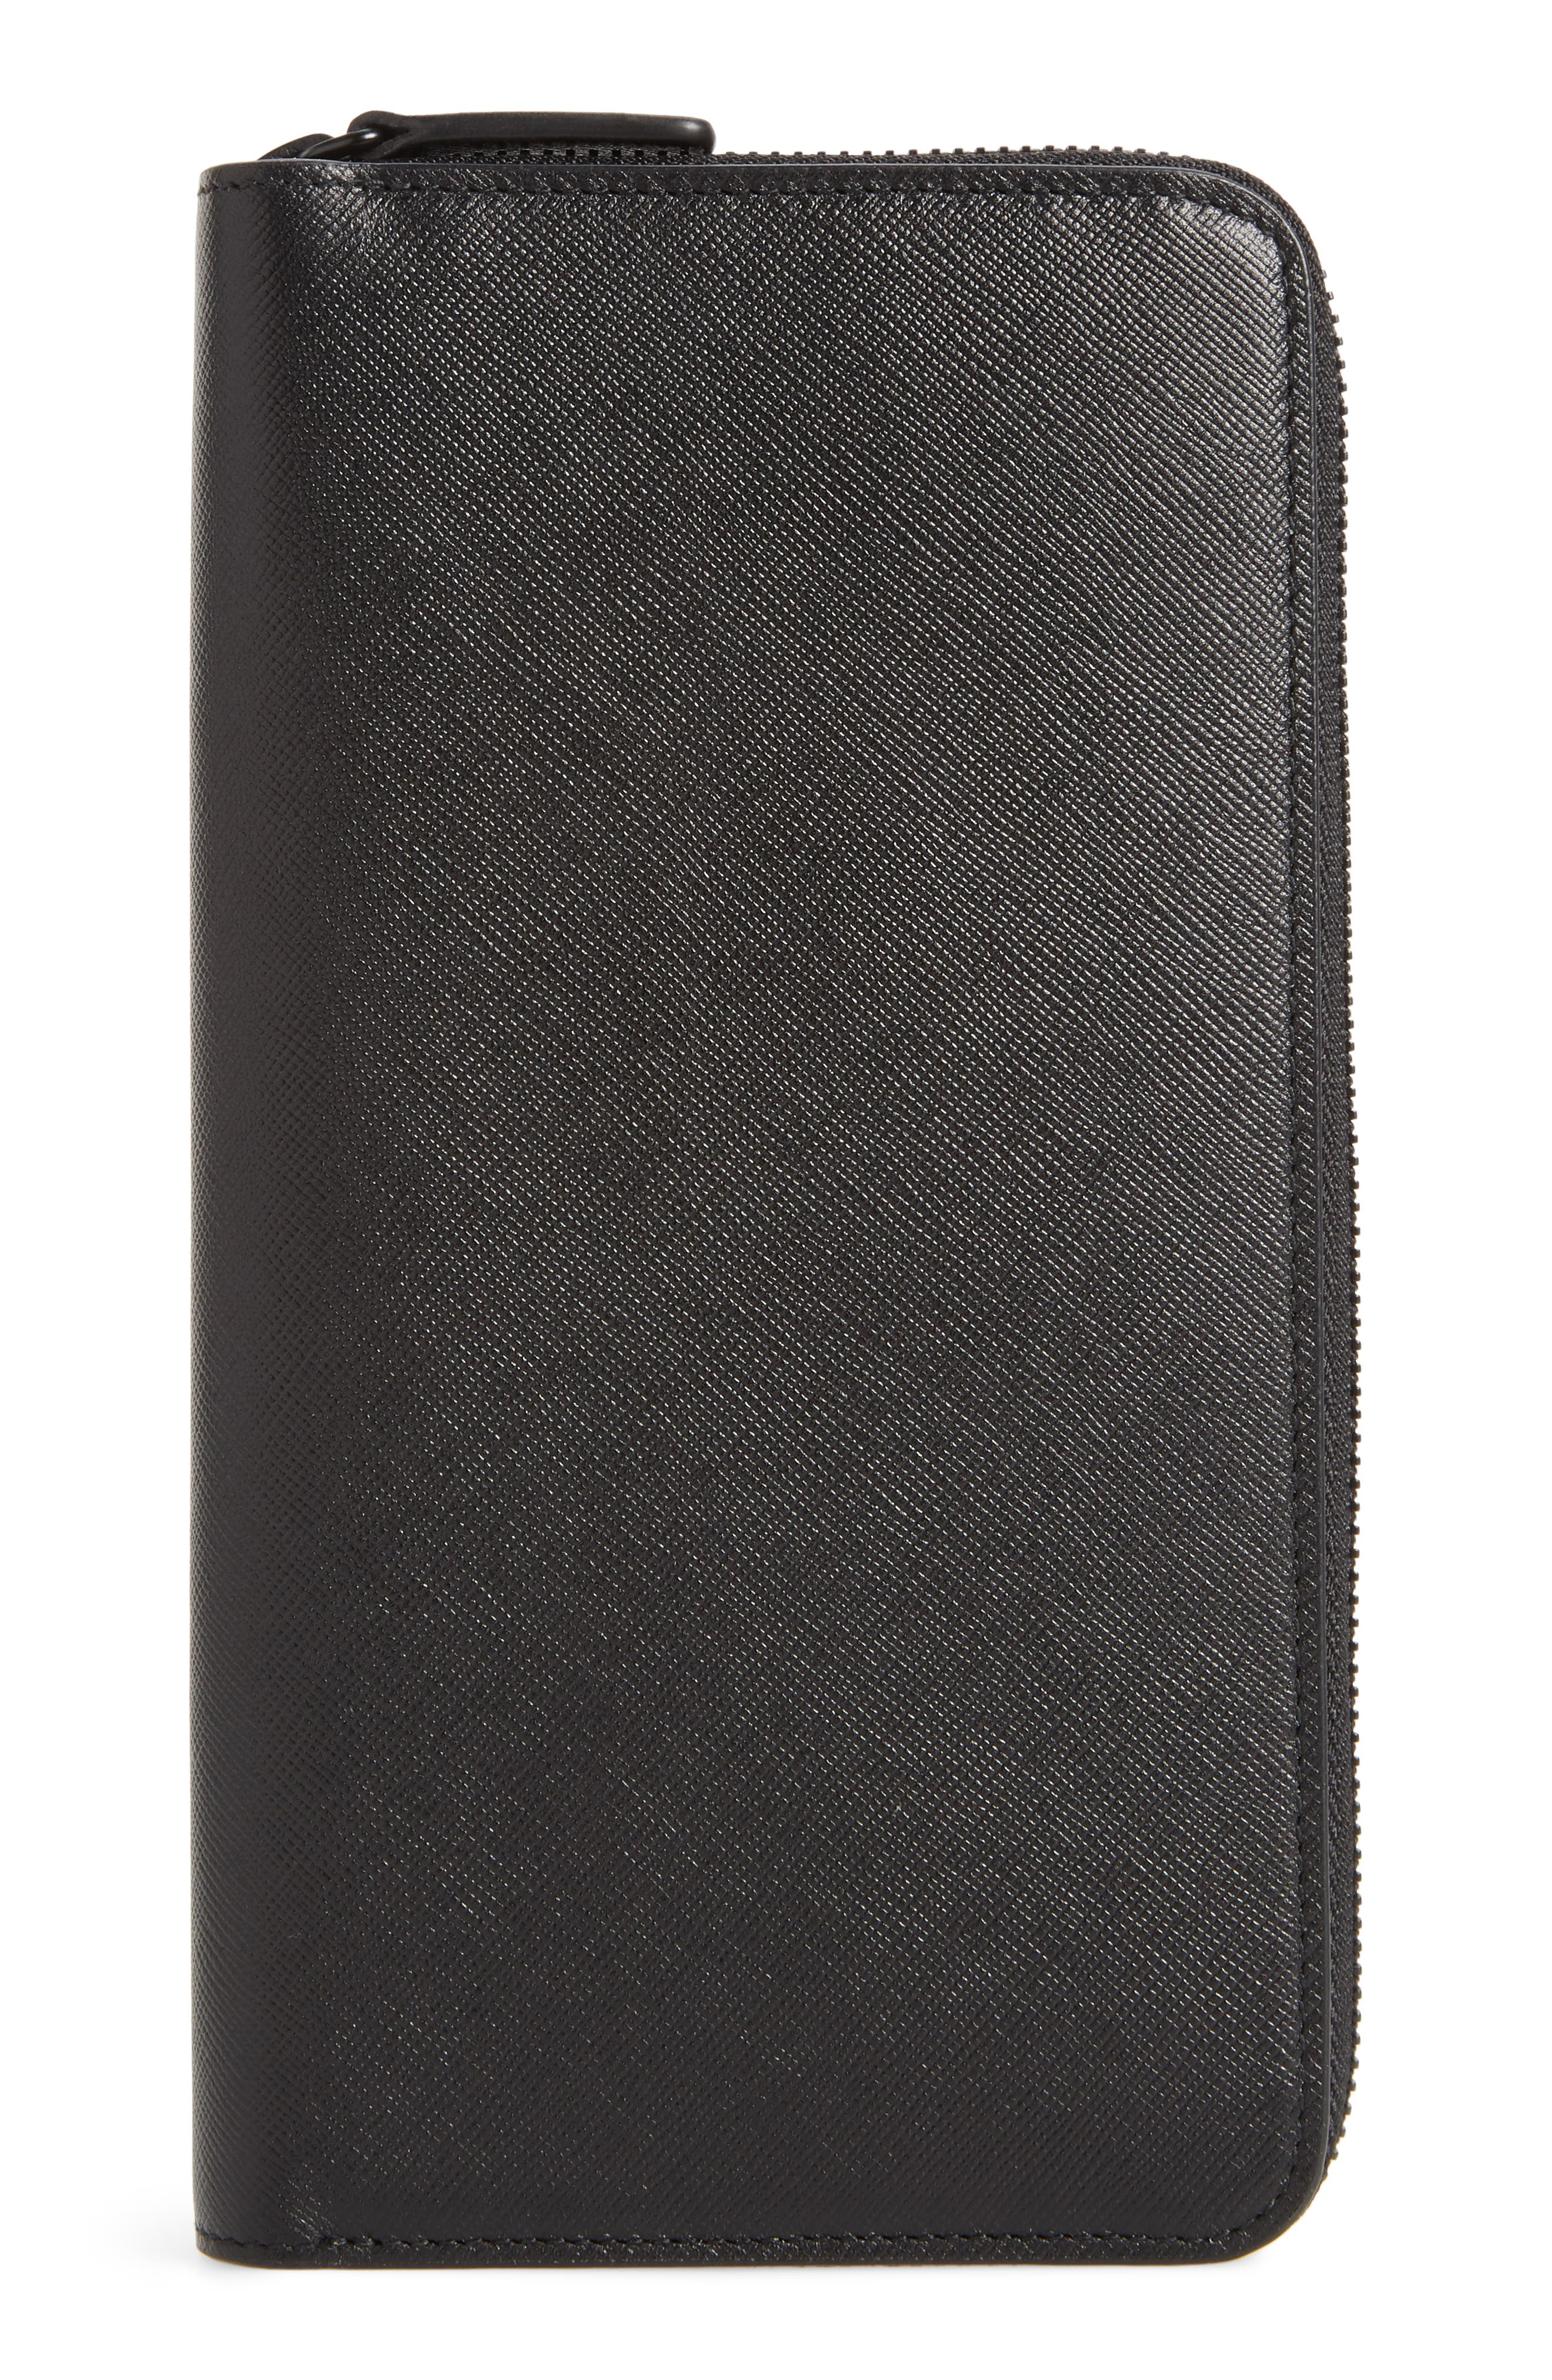 COMMON PROJECTS, Continental Saffiano Leather Zip Wallet, Alternate thumbnail 3, color, BLACK